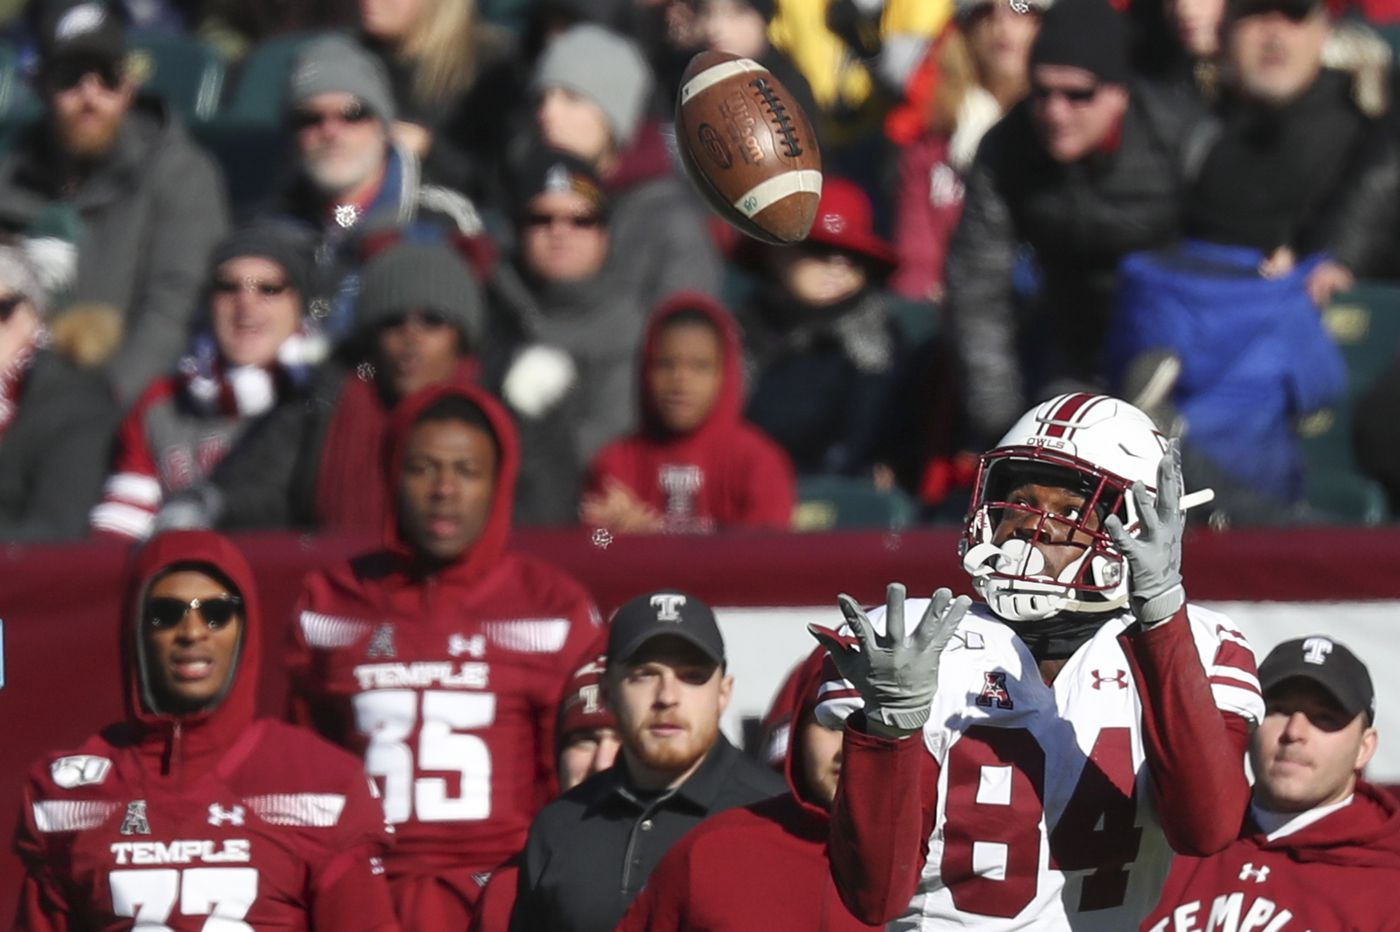 Three takeaways from Temple's 29-21 win over Tulane